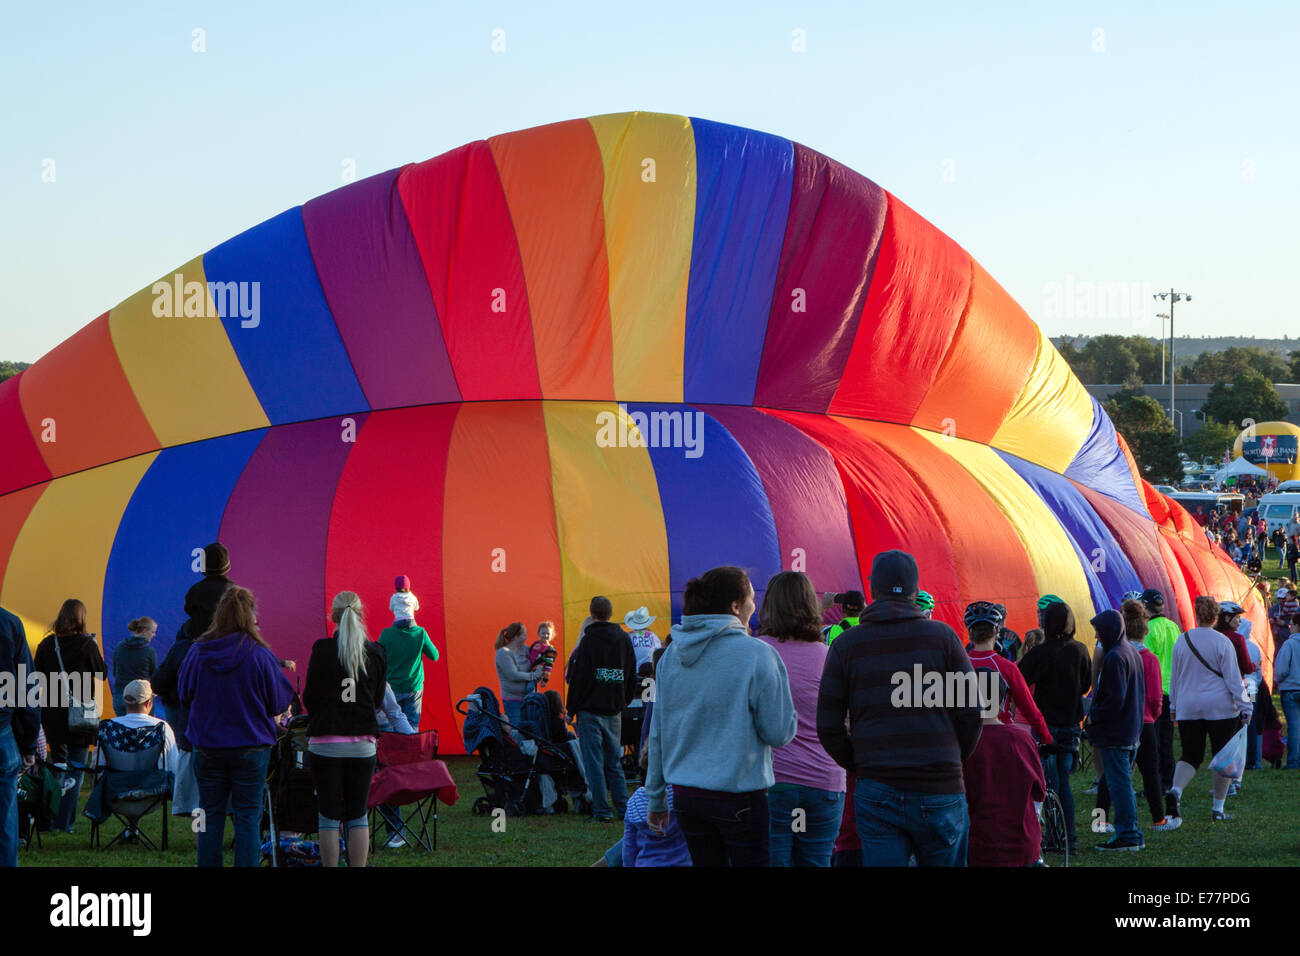 A crowd watches as a rainbow colored hot air balloon is inflated in Colorado Springs, CO Stock Photo